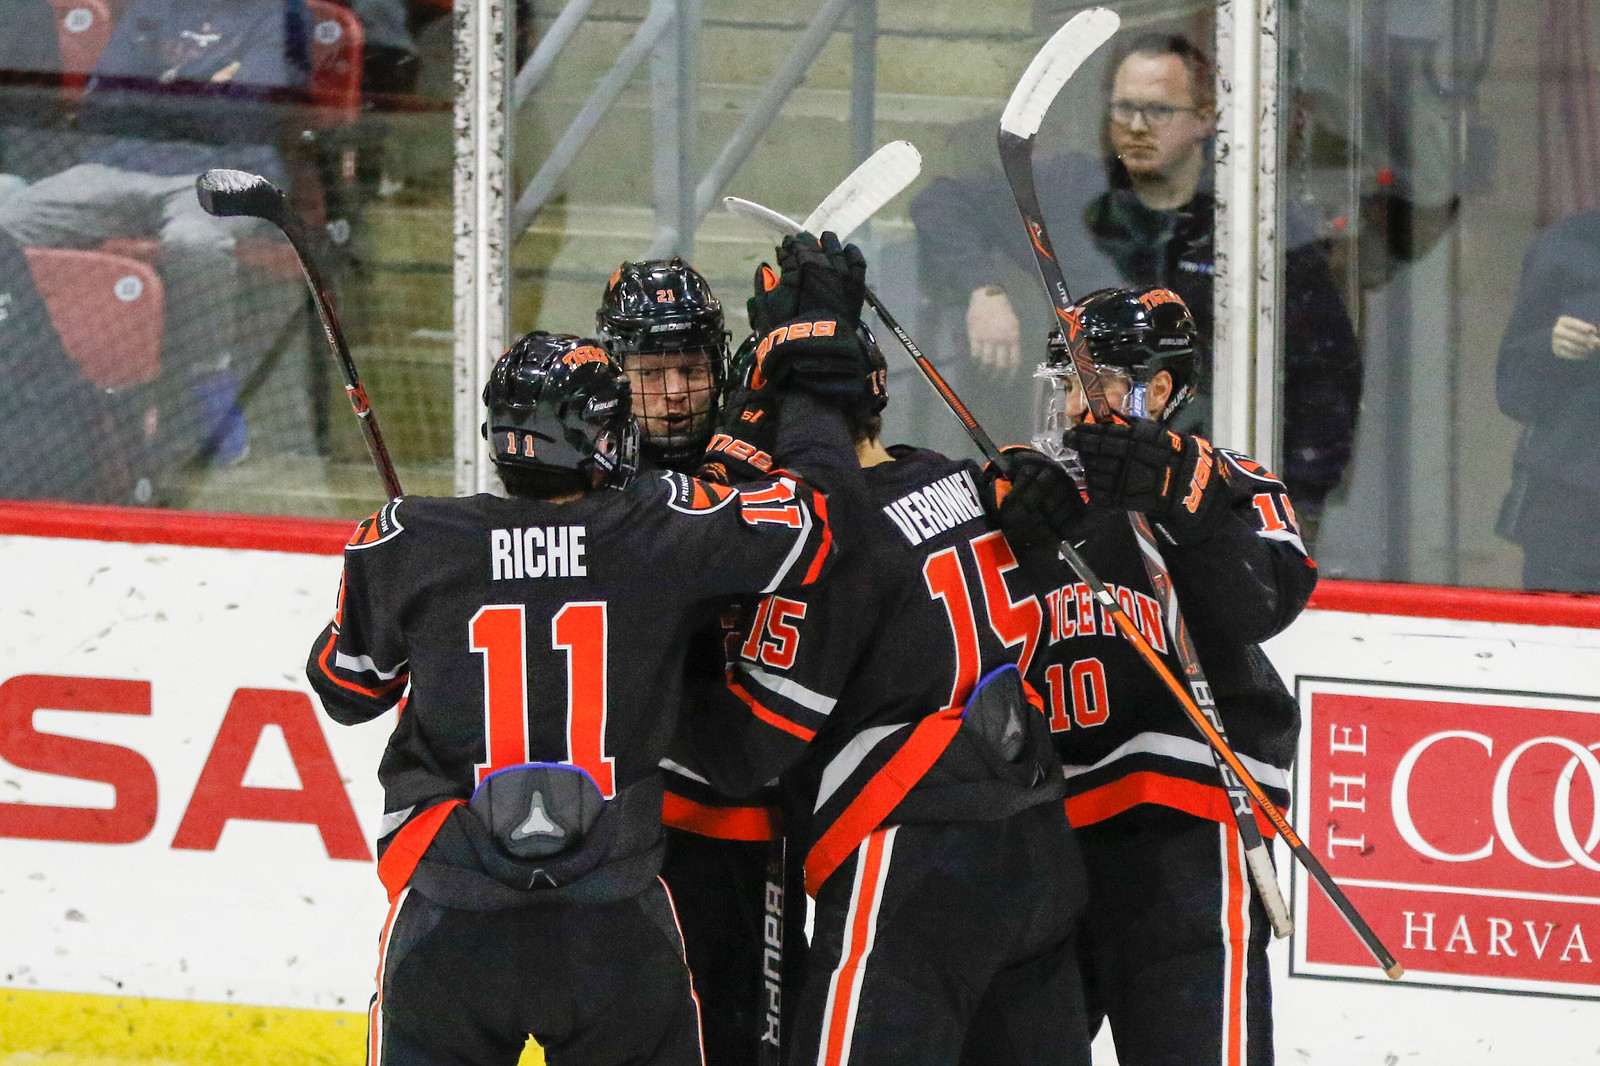 The Tigers' go-ahead goal early in the third period sealed the victory for the home team.